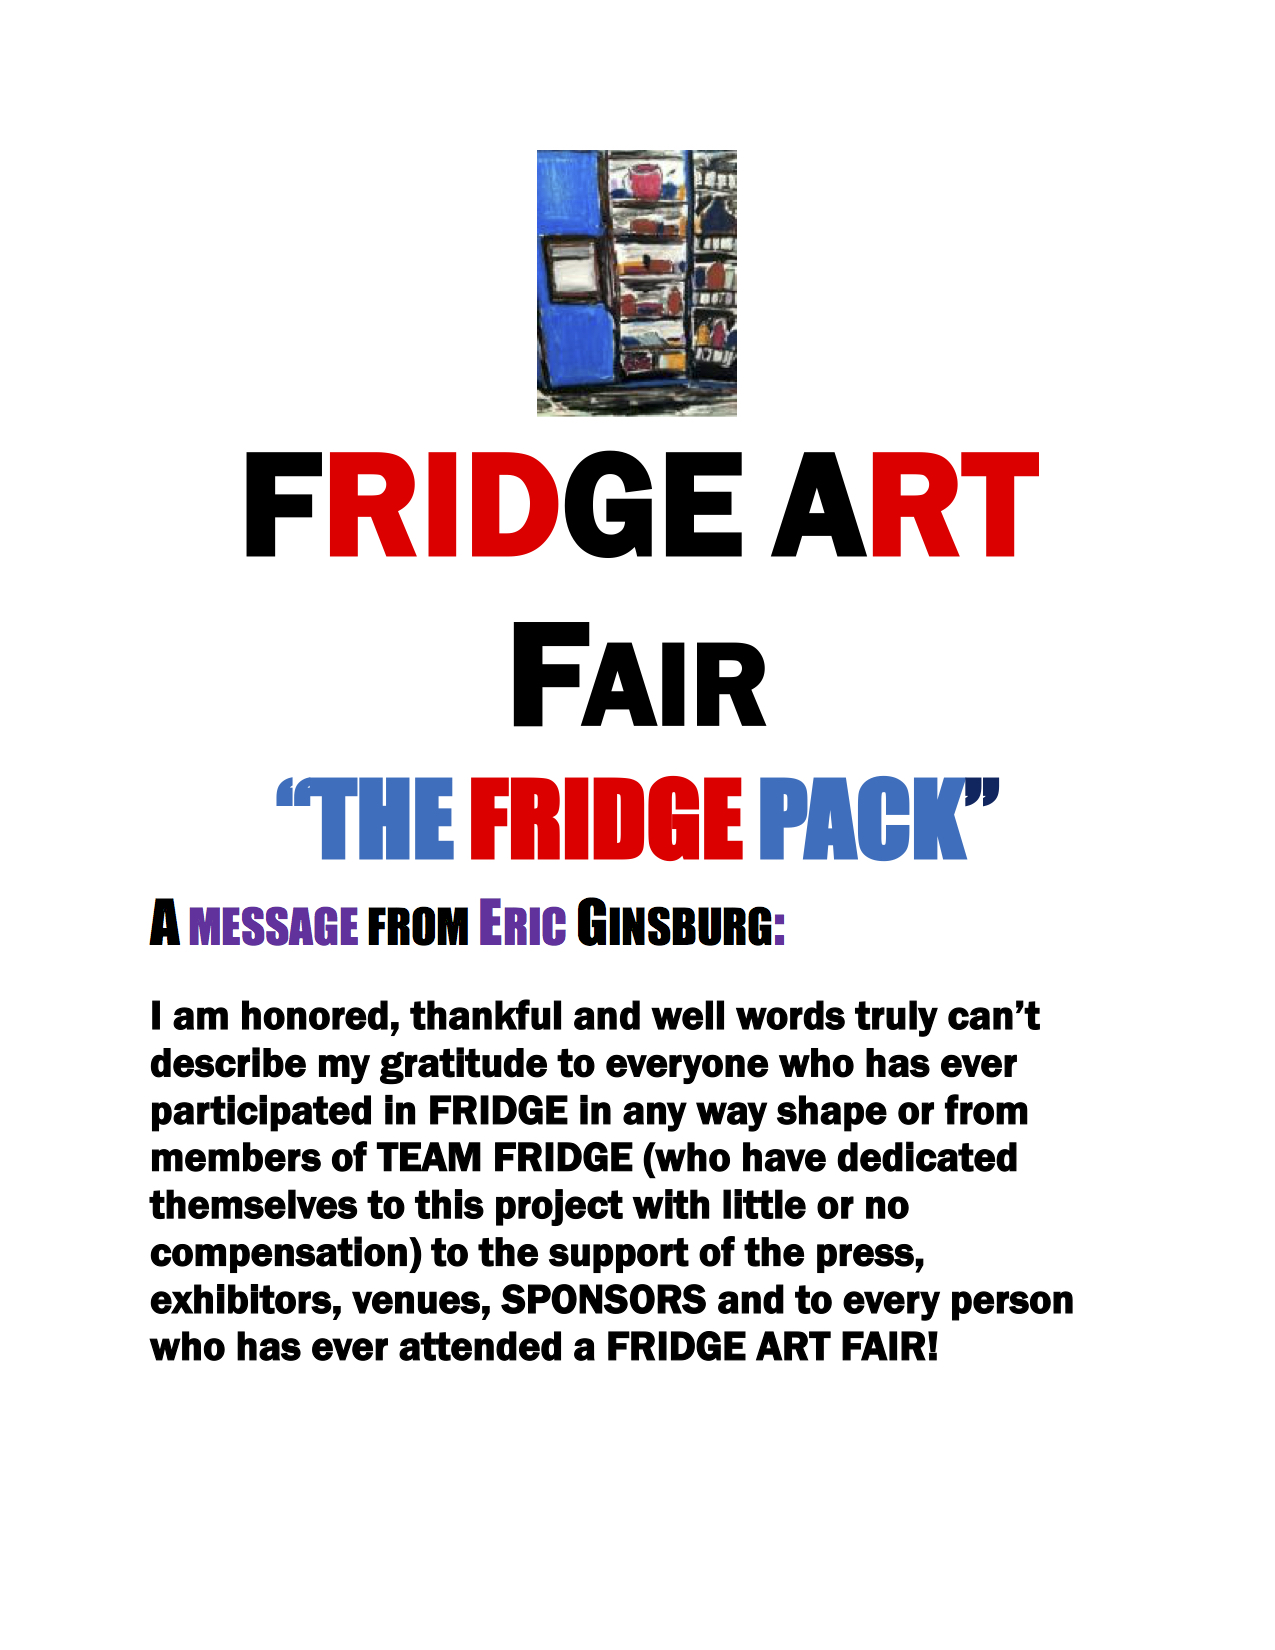 Fridge Pack-2017 (dragged) copy-1